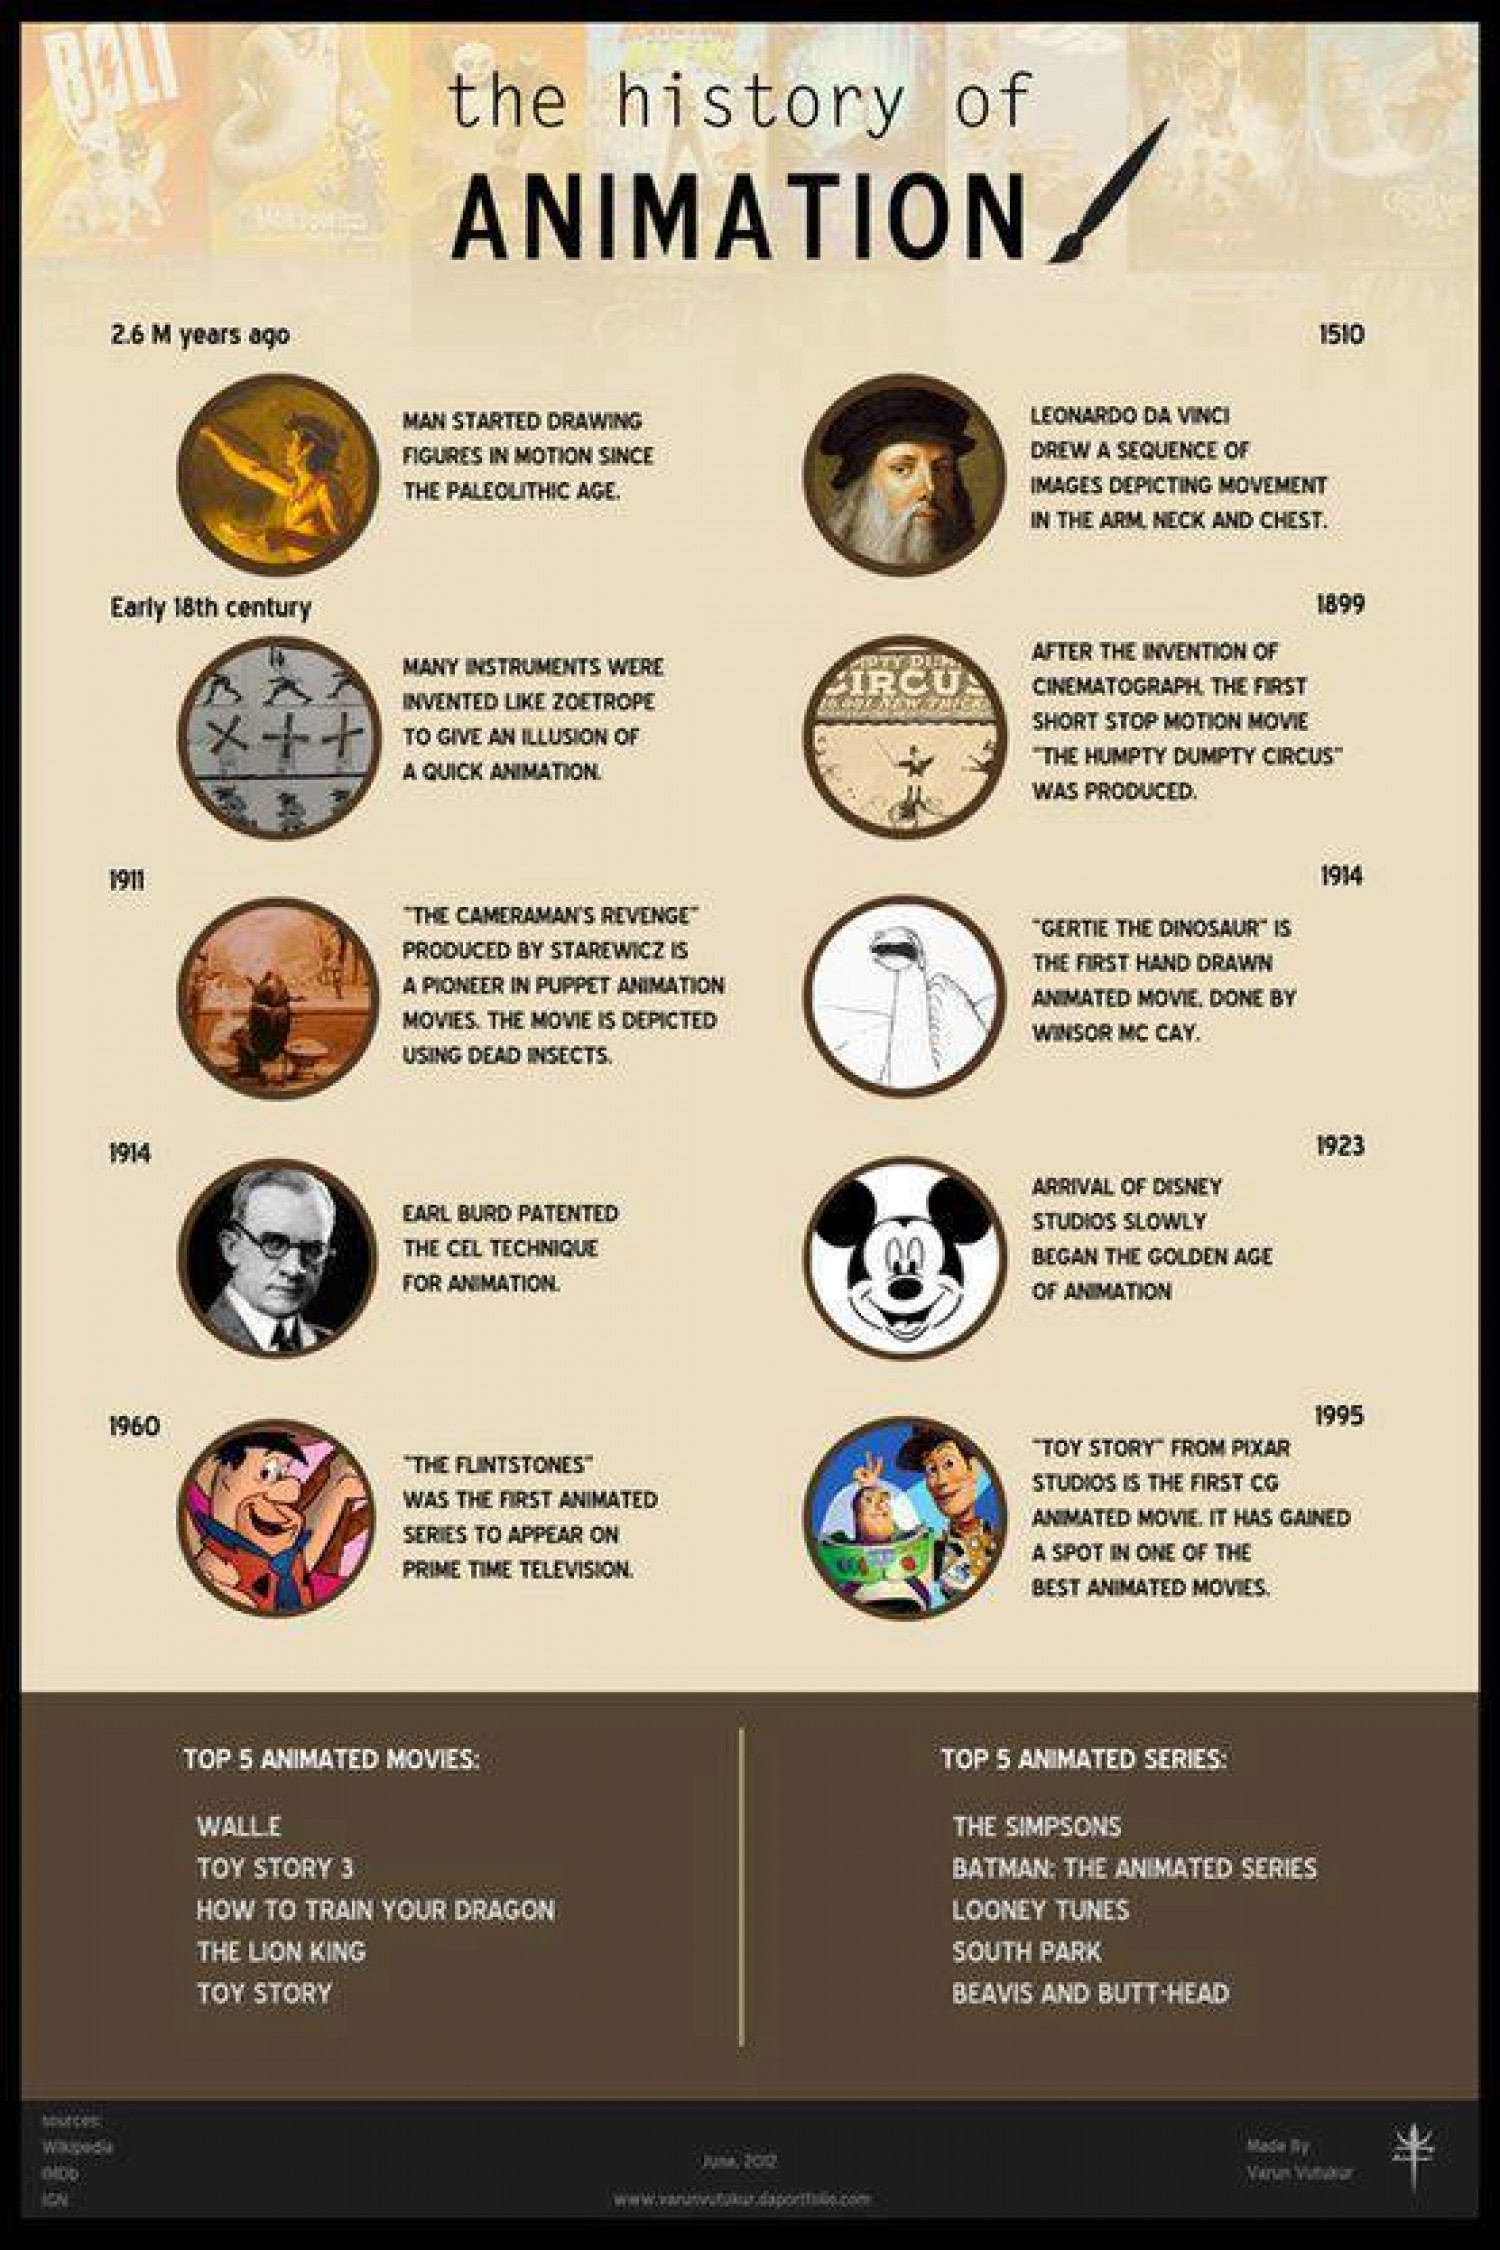 history of animation A fascinating look at the history of animation and animators / visionaries like max fleisher, walter lantz, and otto messmer.